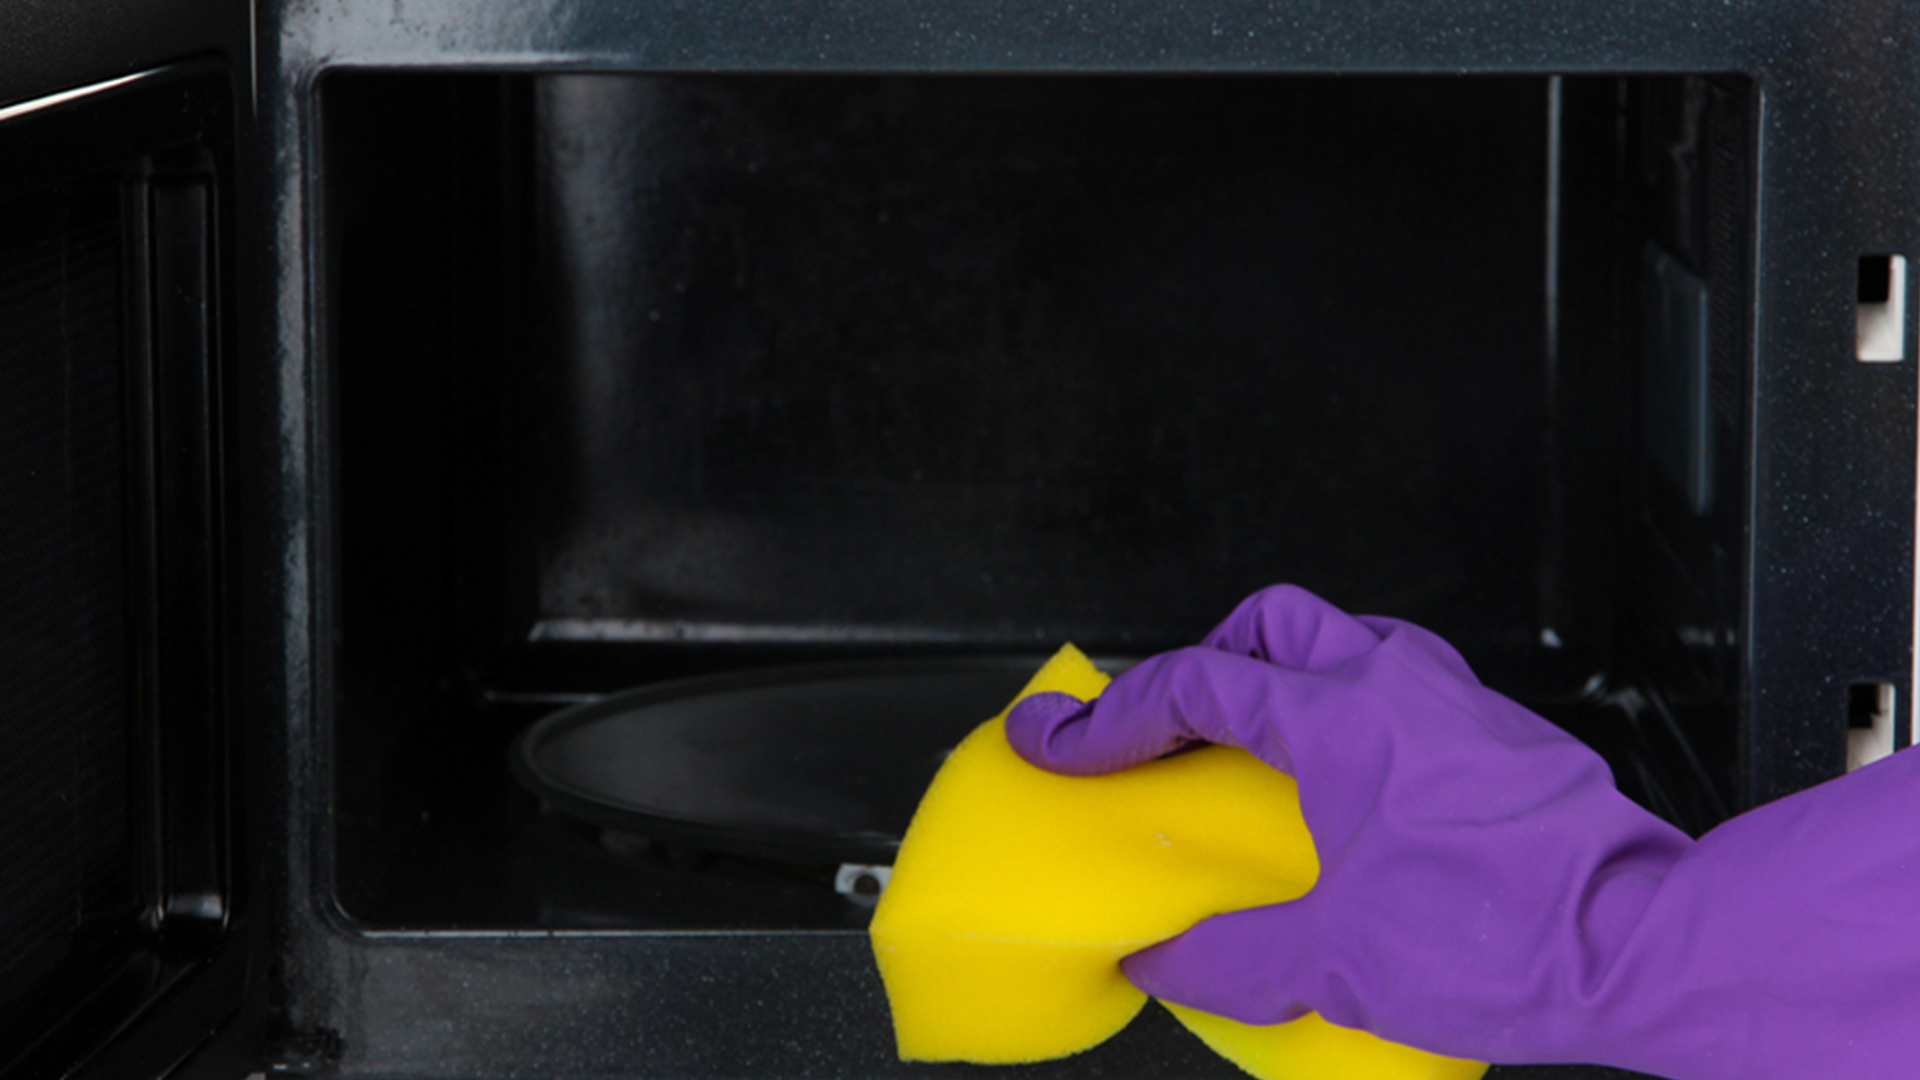 how to clean a microwave with vinegar and other hacks today